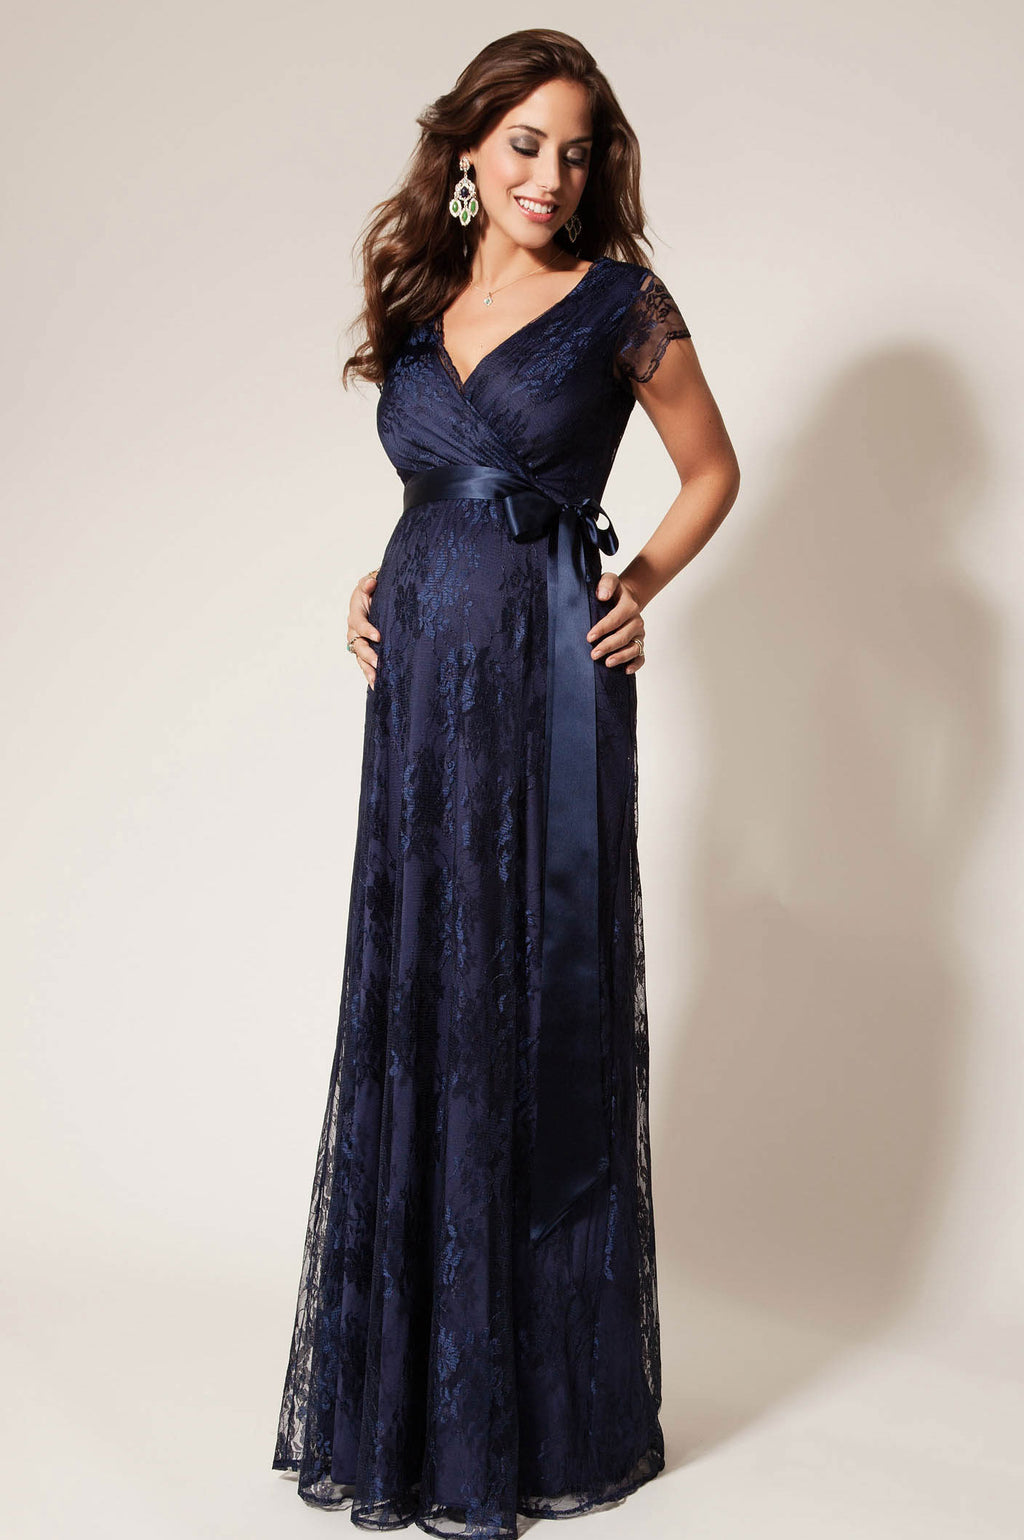 Tiffany Rose Eden Lace Maternity Gown worn by Princesses of Sweden - Seven Women Maternity